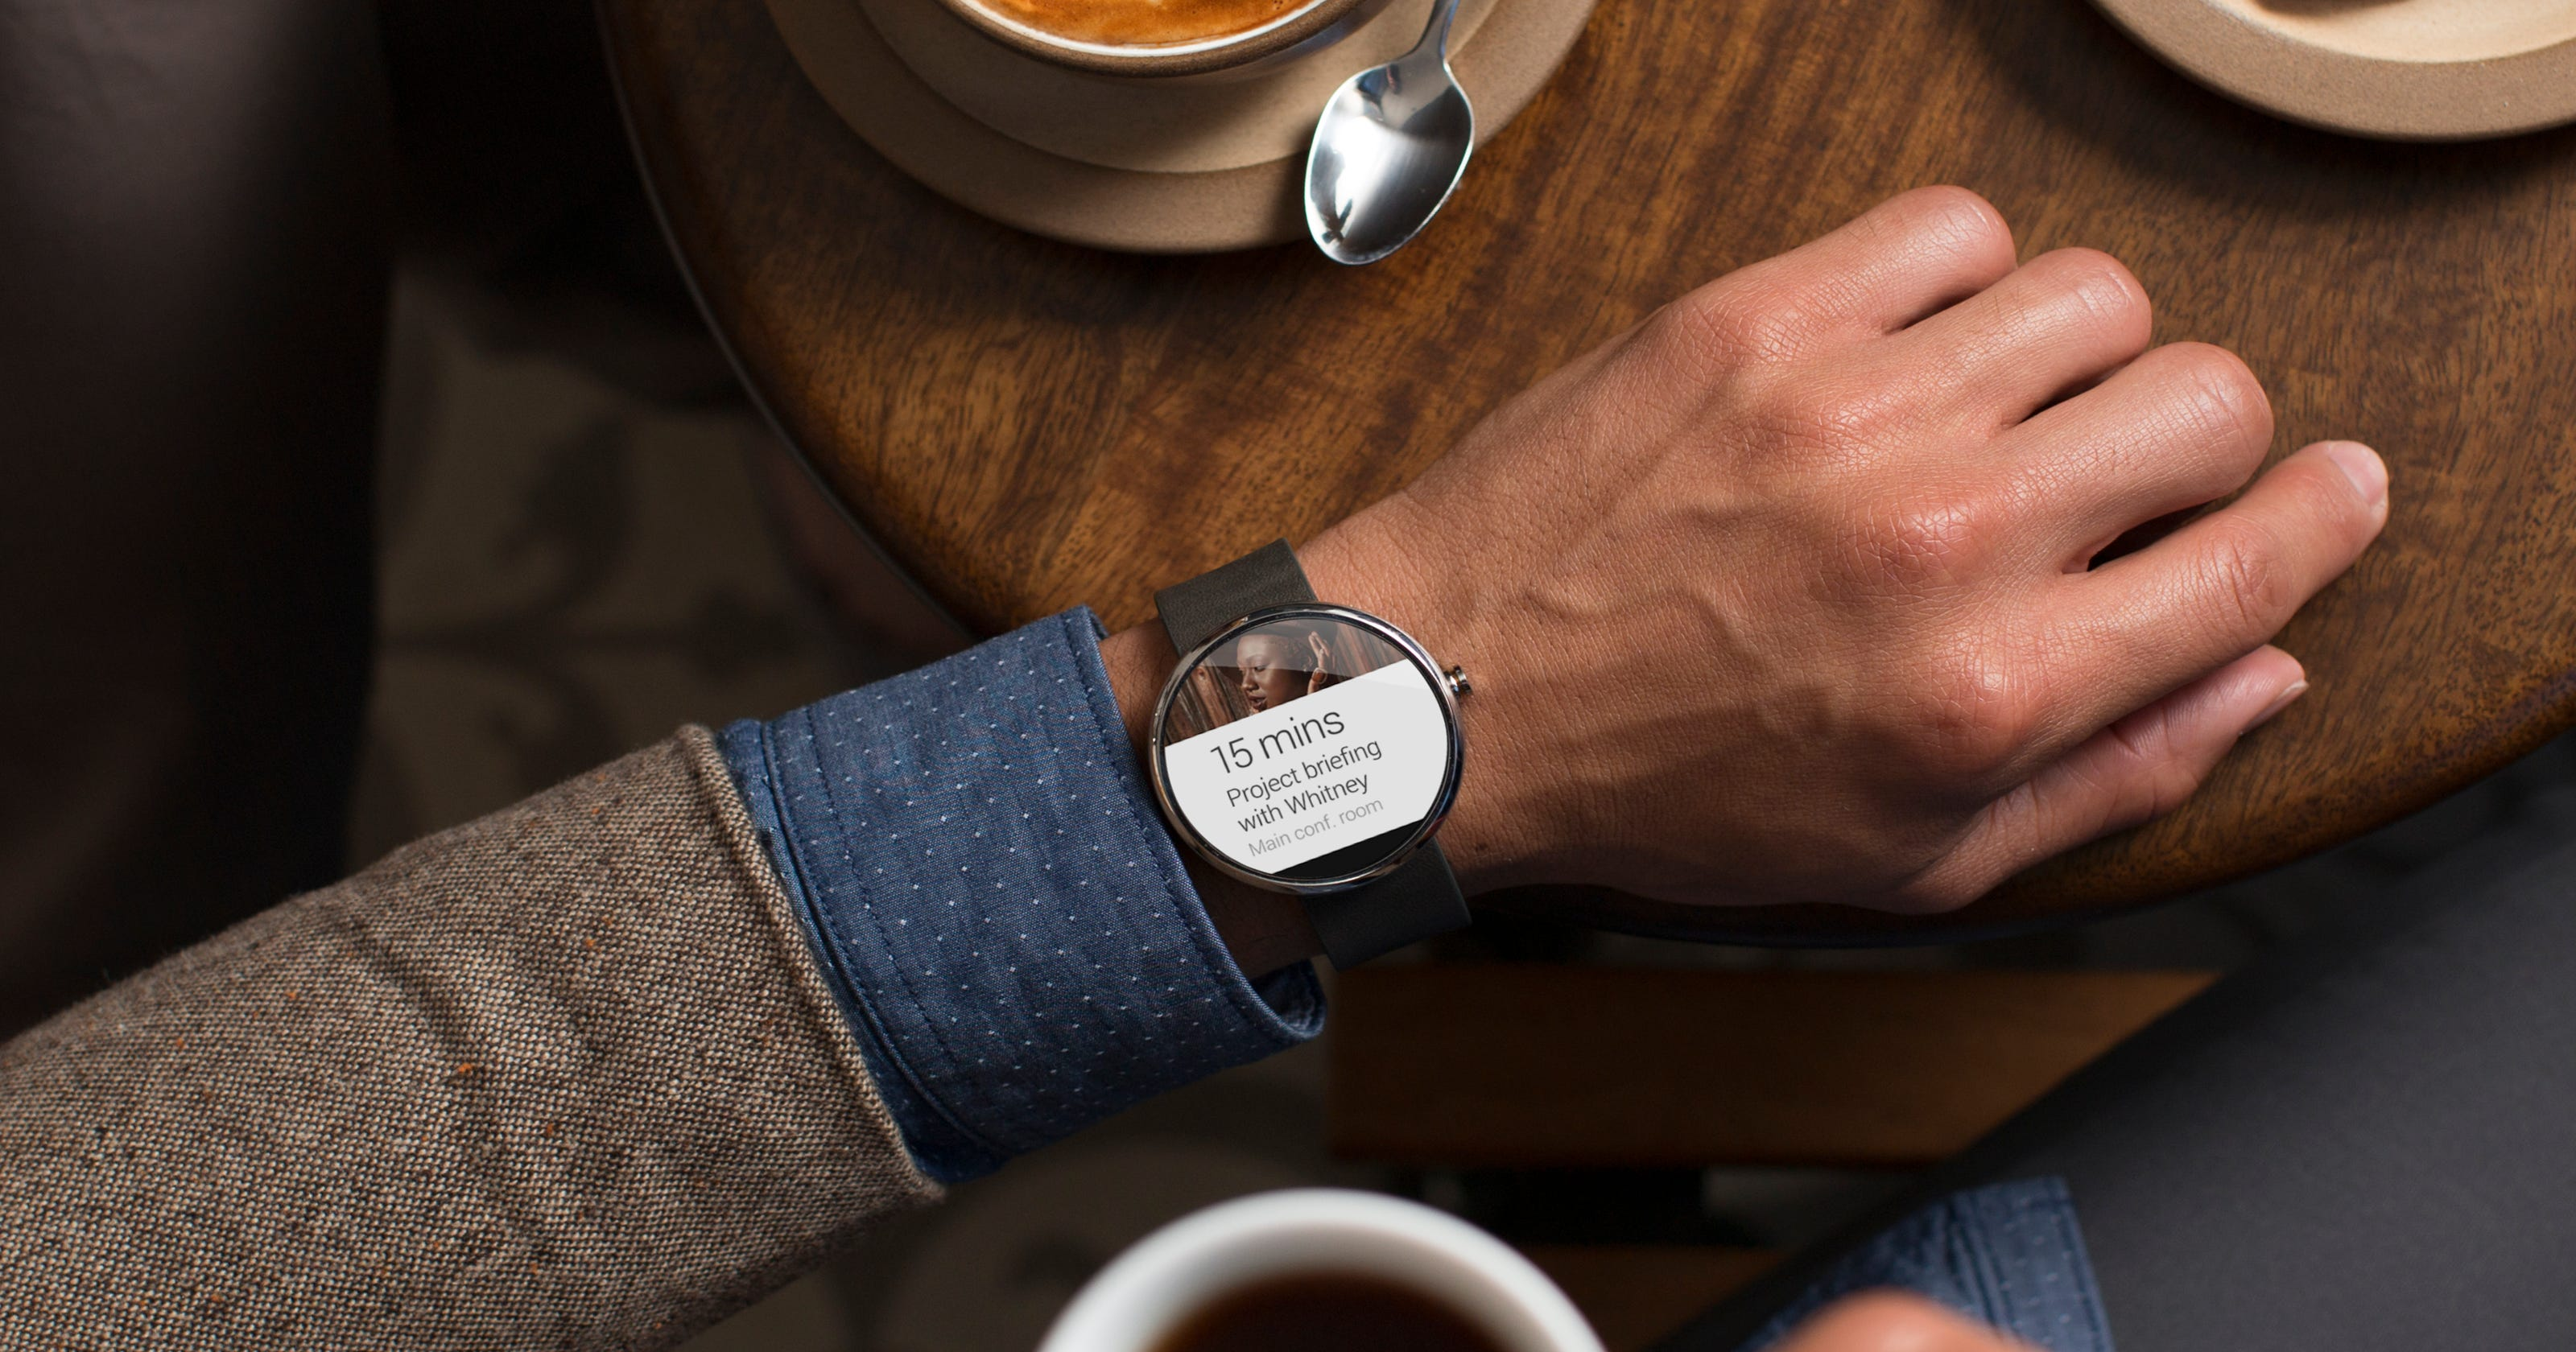 Google sees bright future in wearable devices